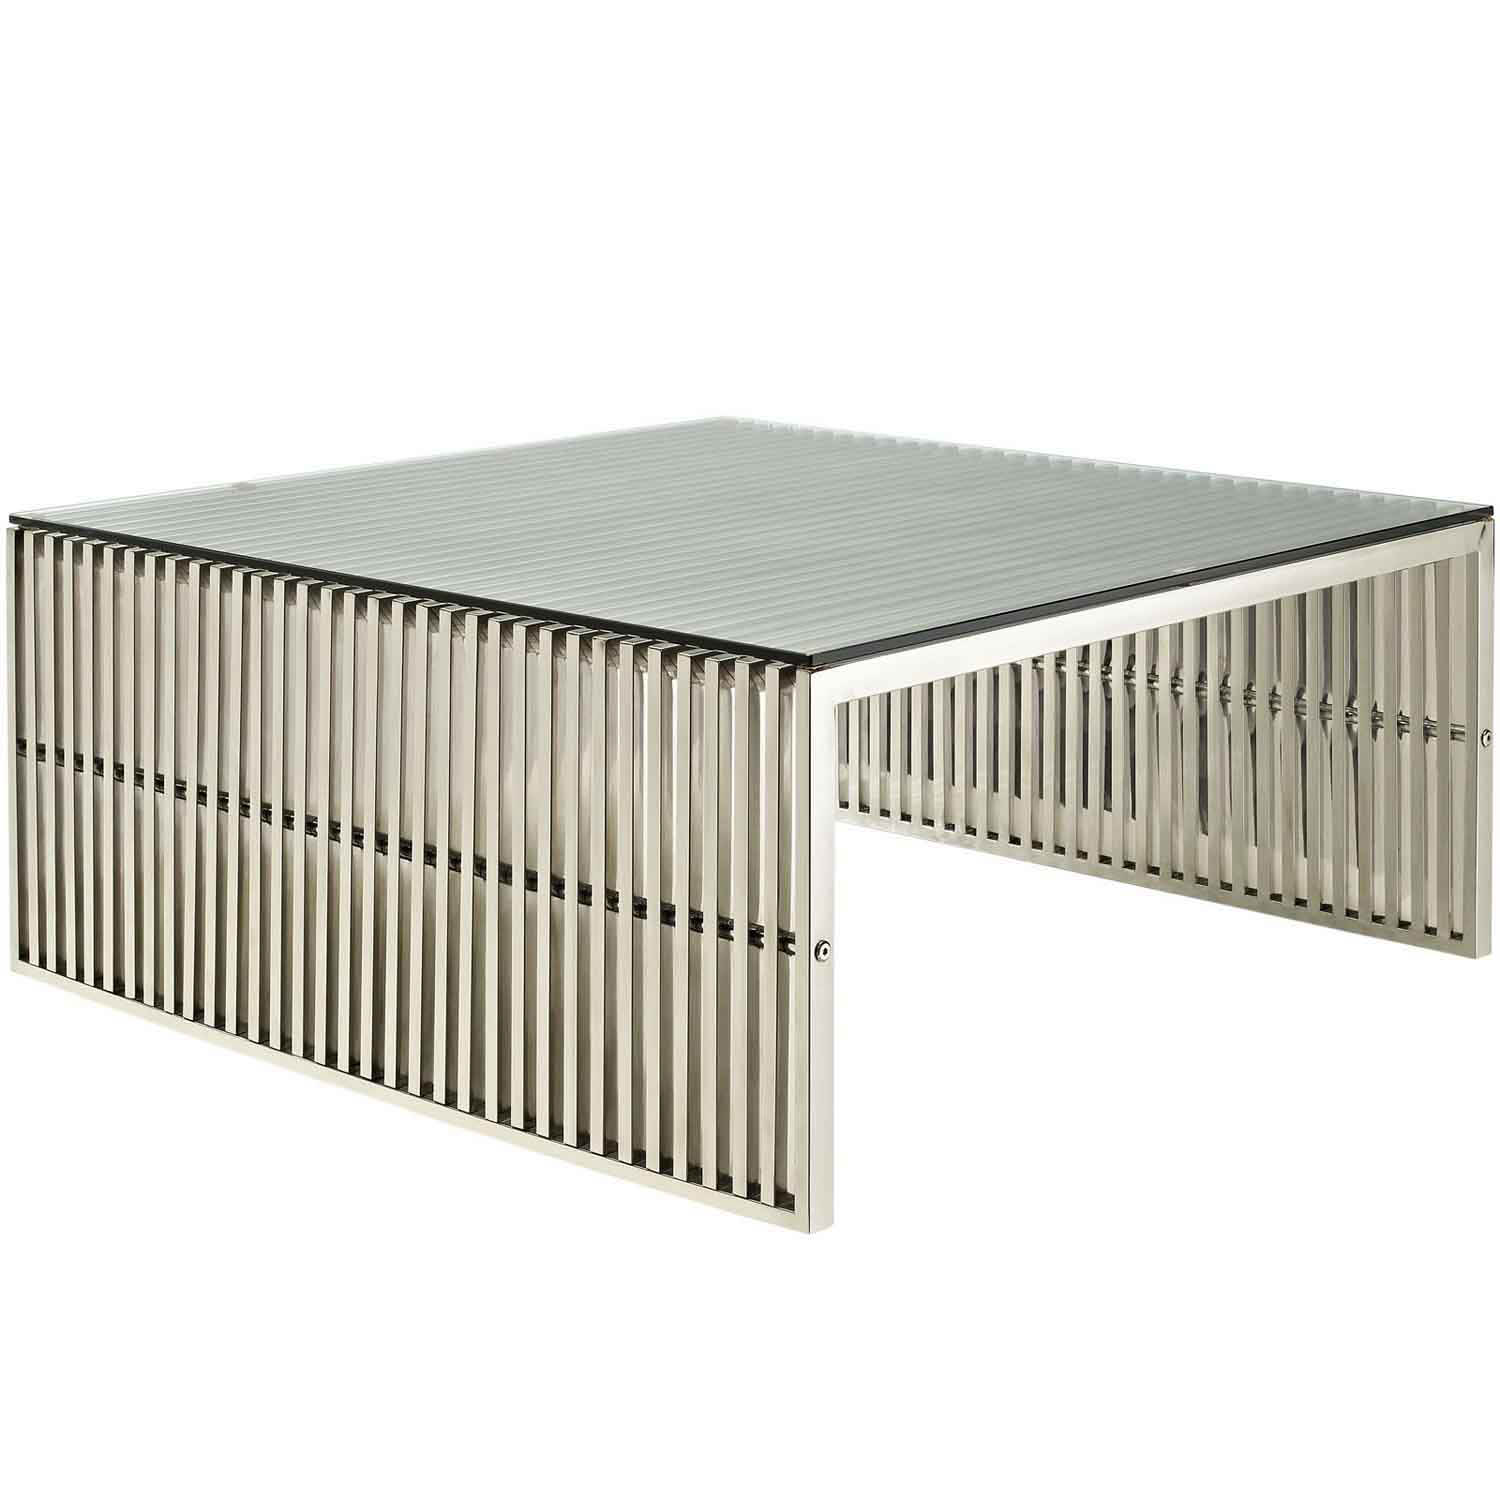 Modway Gridiron Coffee Table - Silver